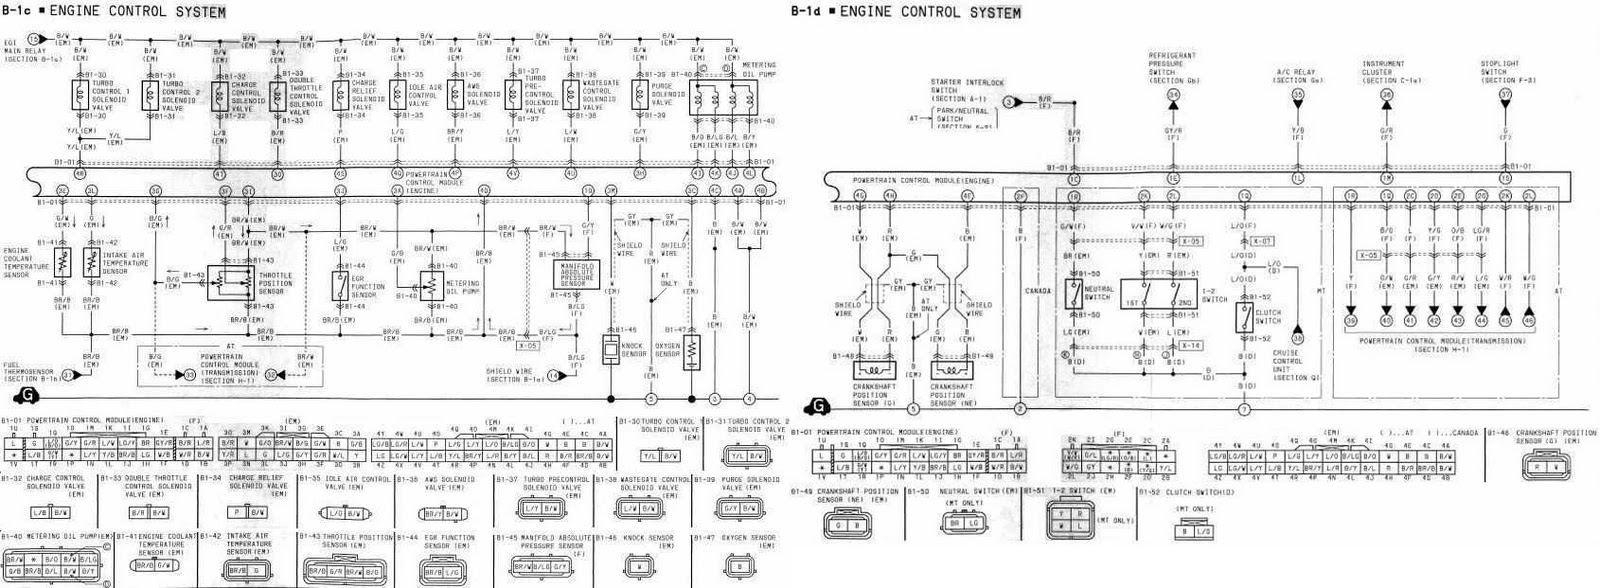 Stunning Mazda Rx 7 Engine Diagram Images Best Image Rotary Rx7 Gallery